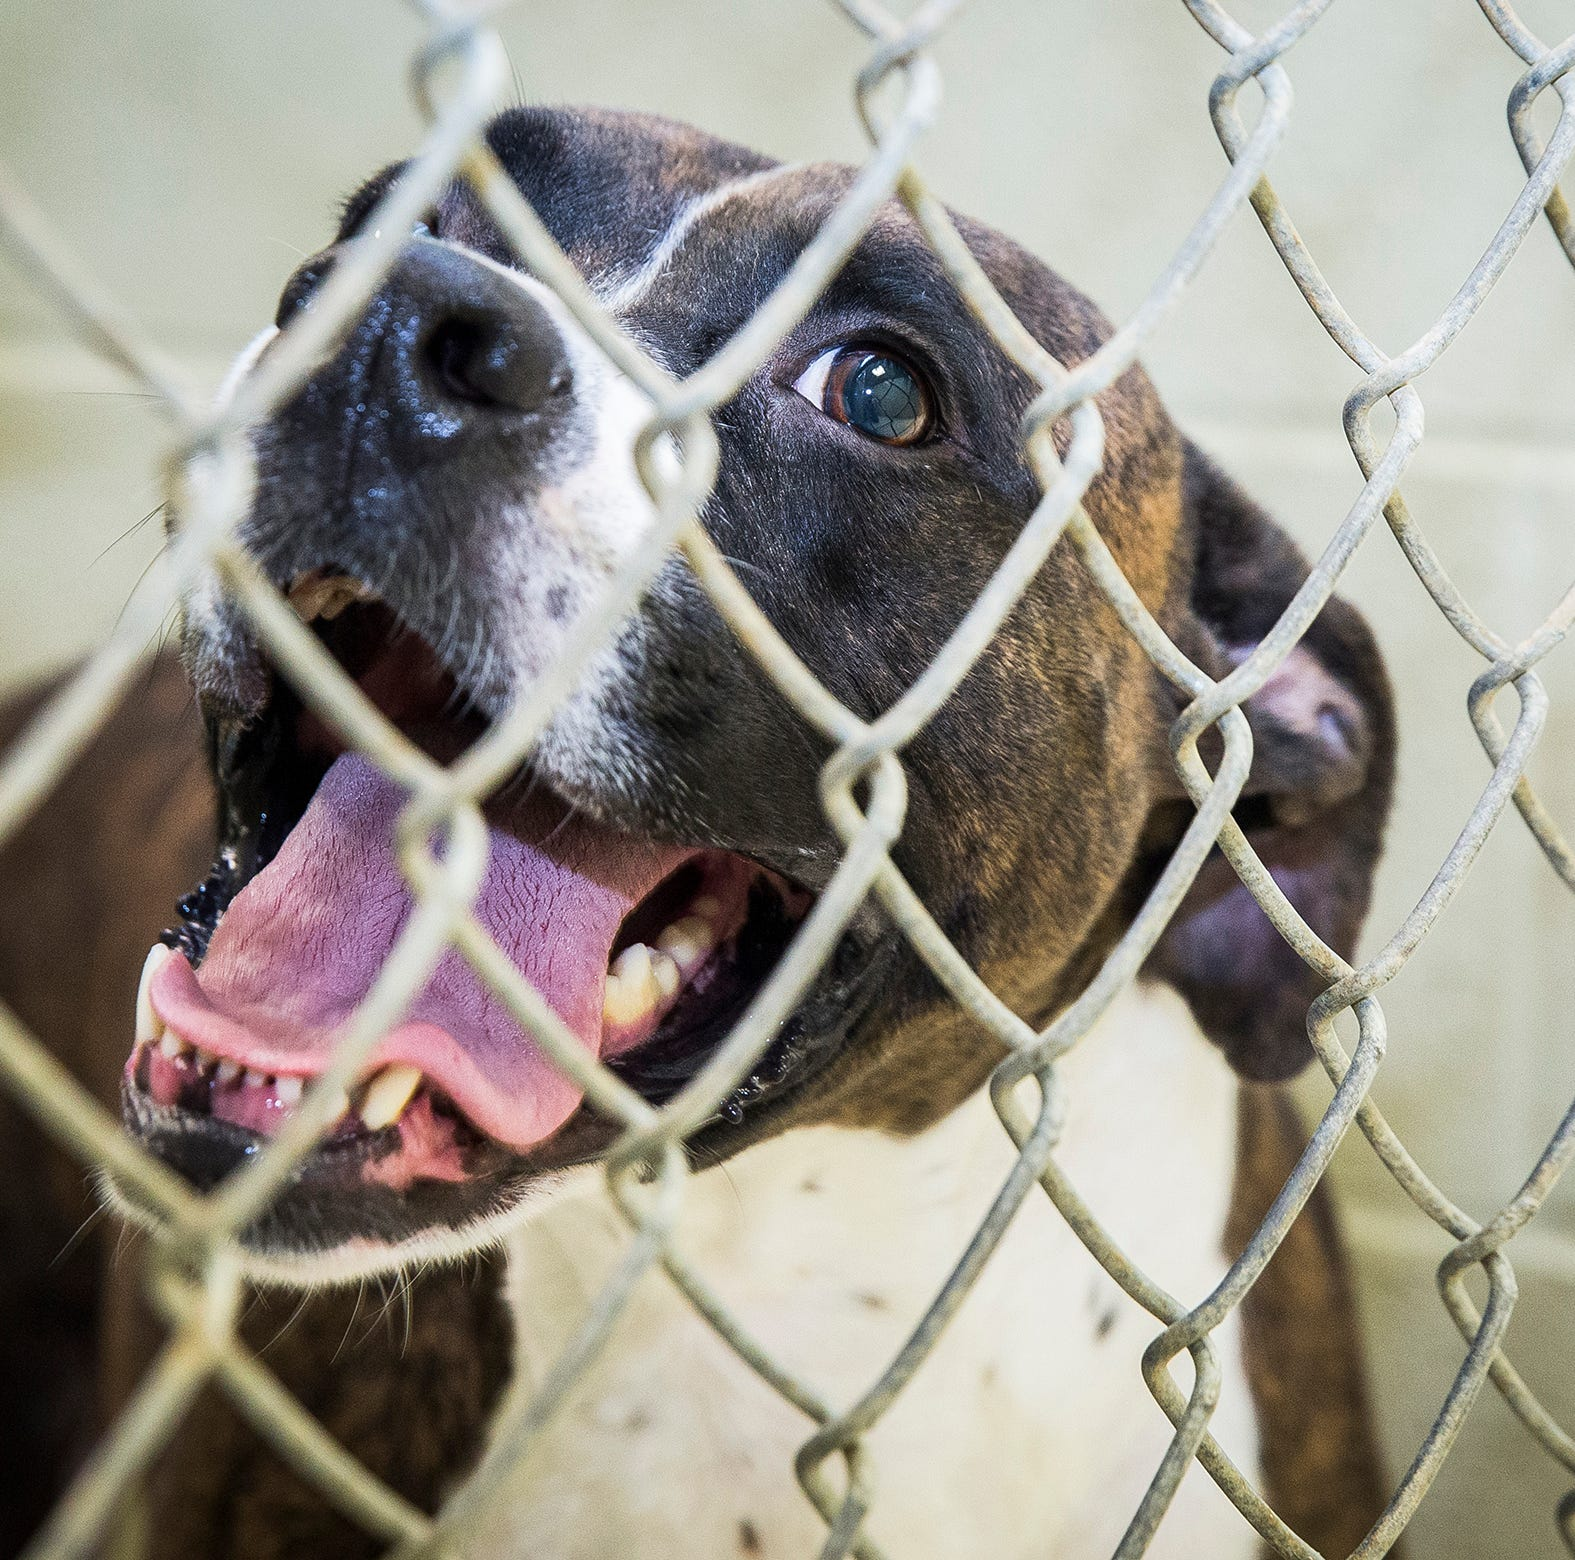 Muncie animal shelter receives grants to reduce adoption fees, for spay/neuter services